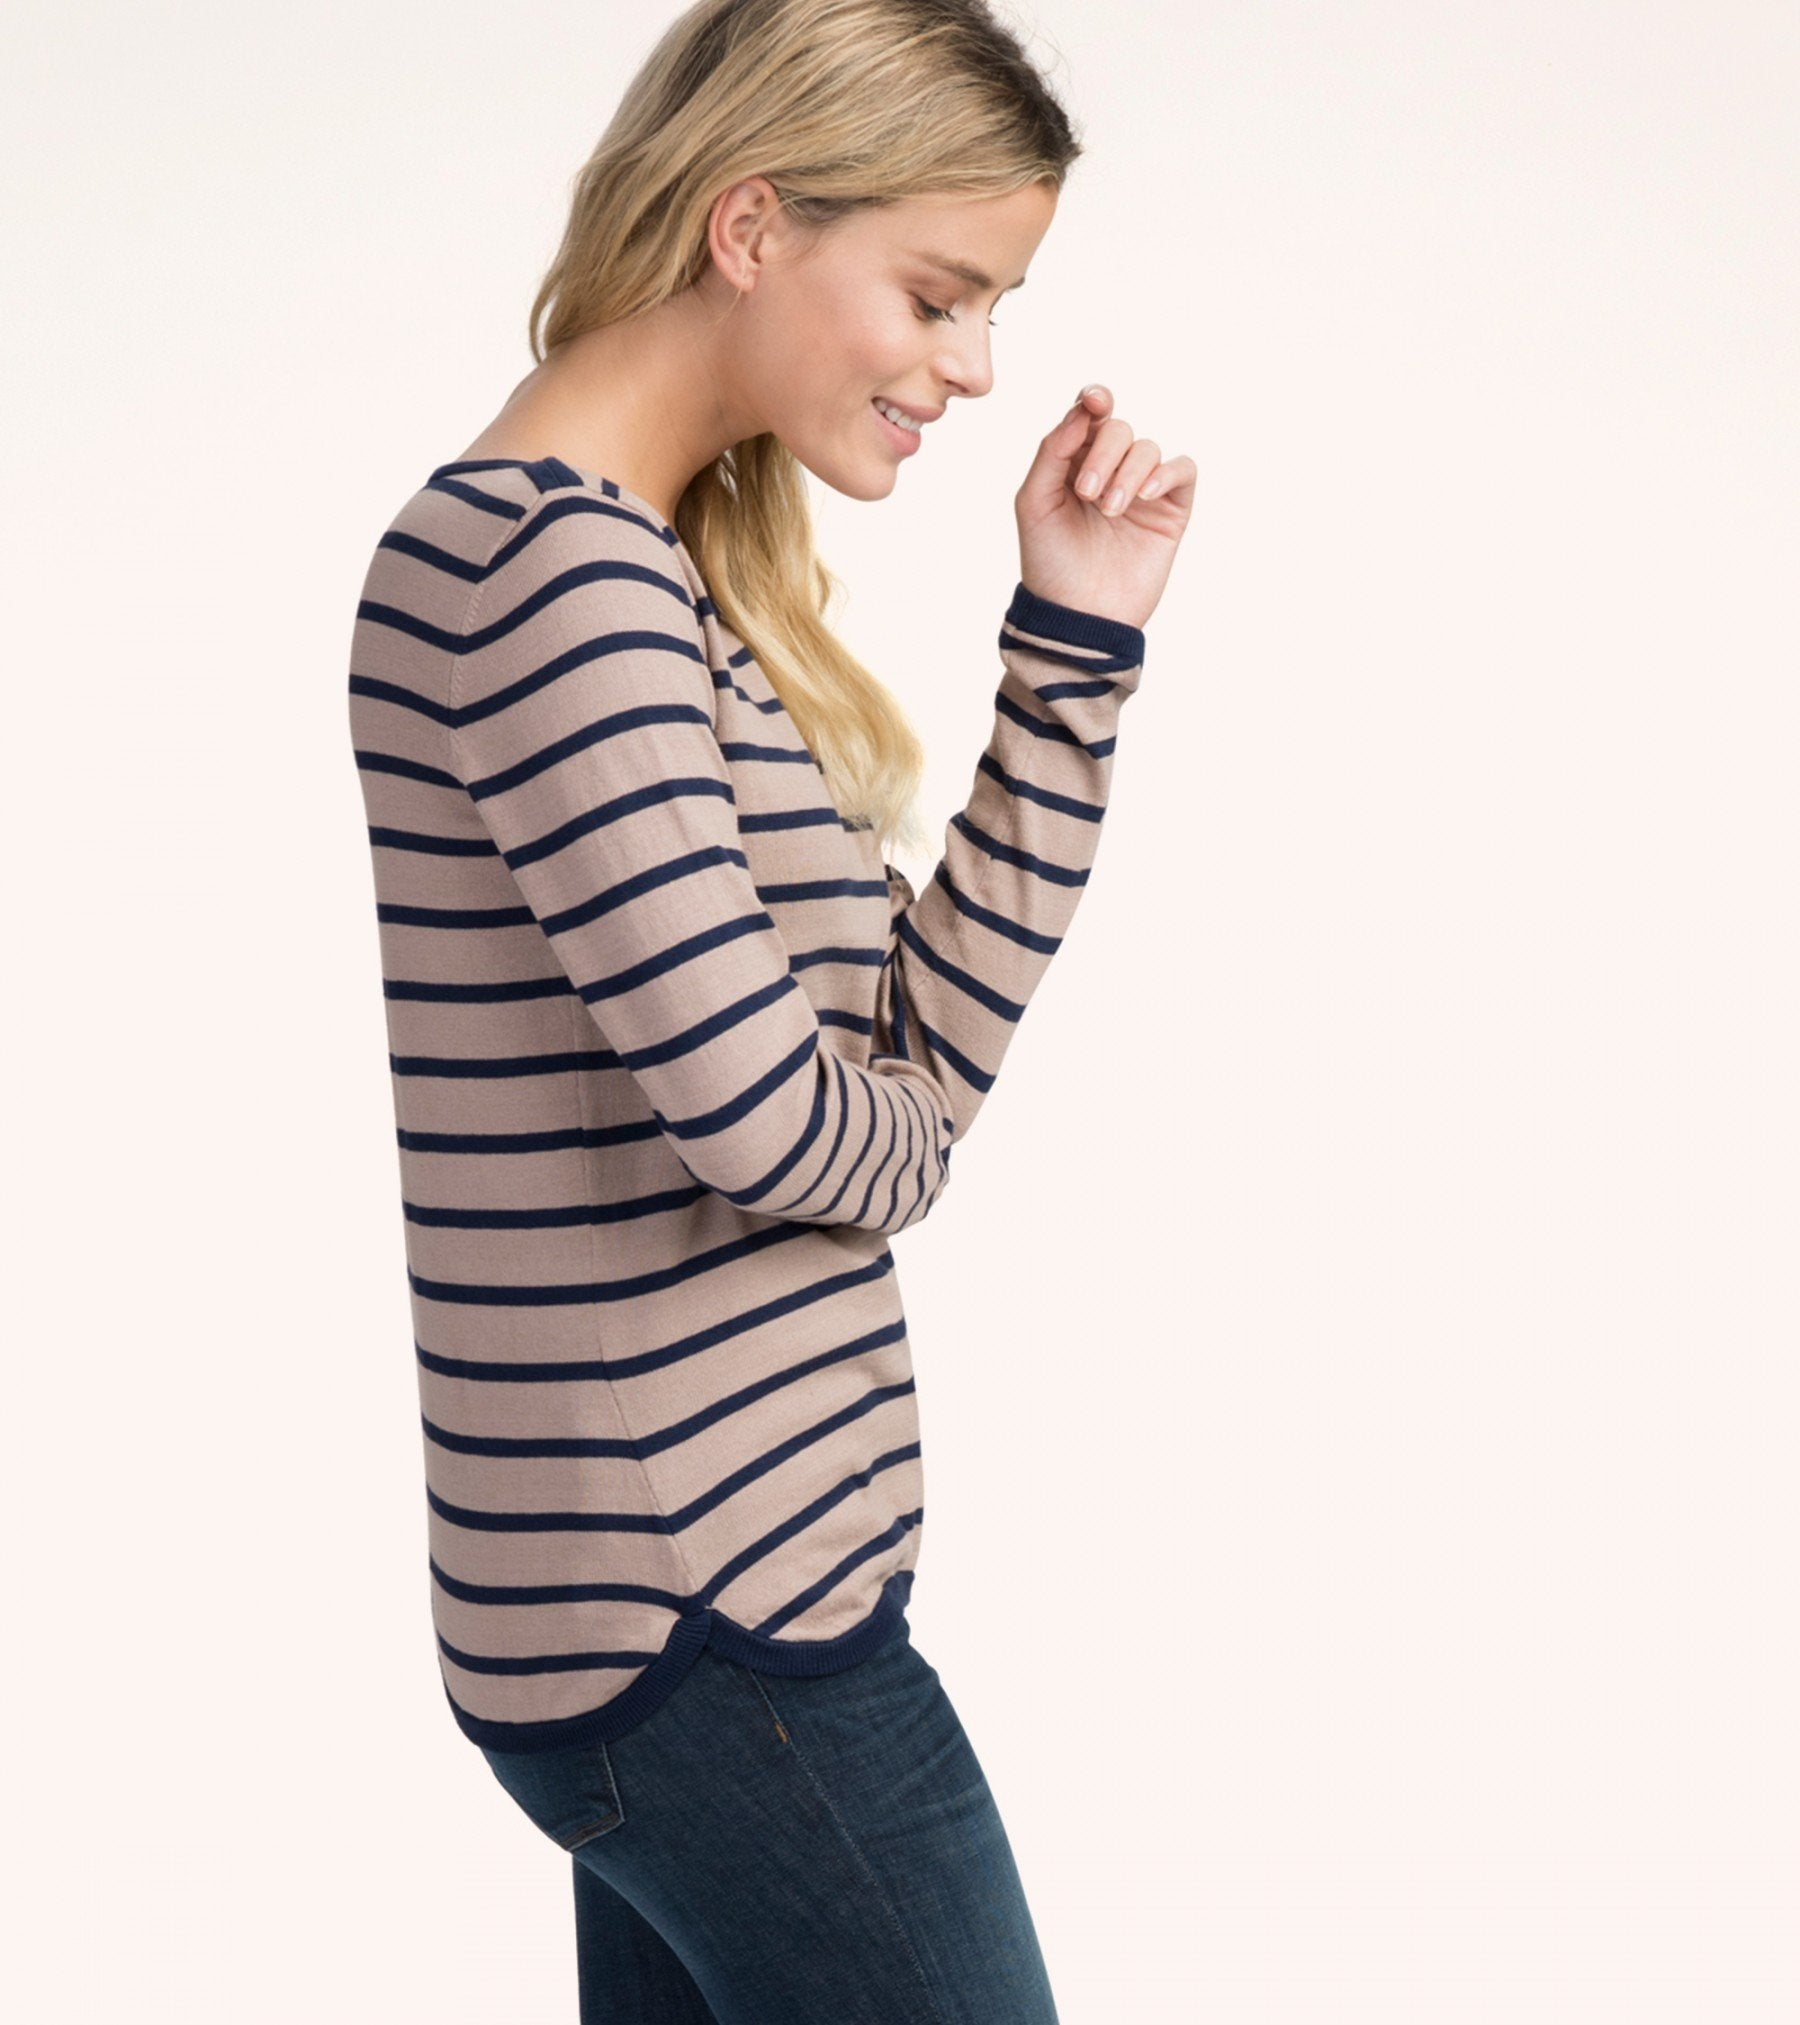 HATLEY Breton Striped Knit Shirt | Winter Long Sleeve